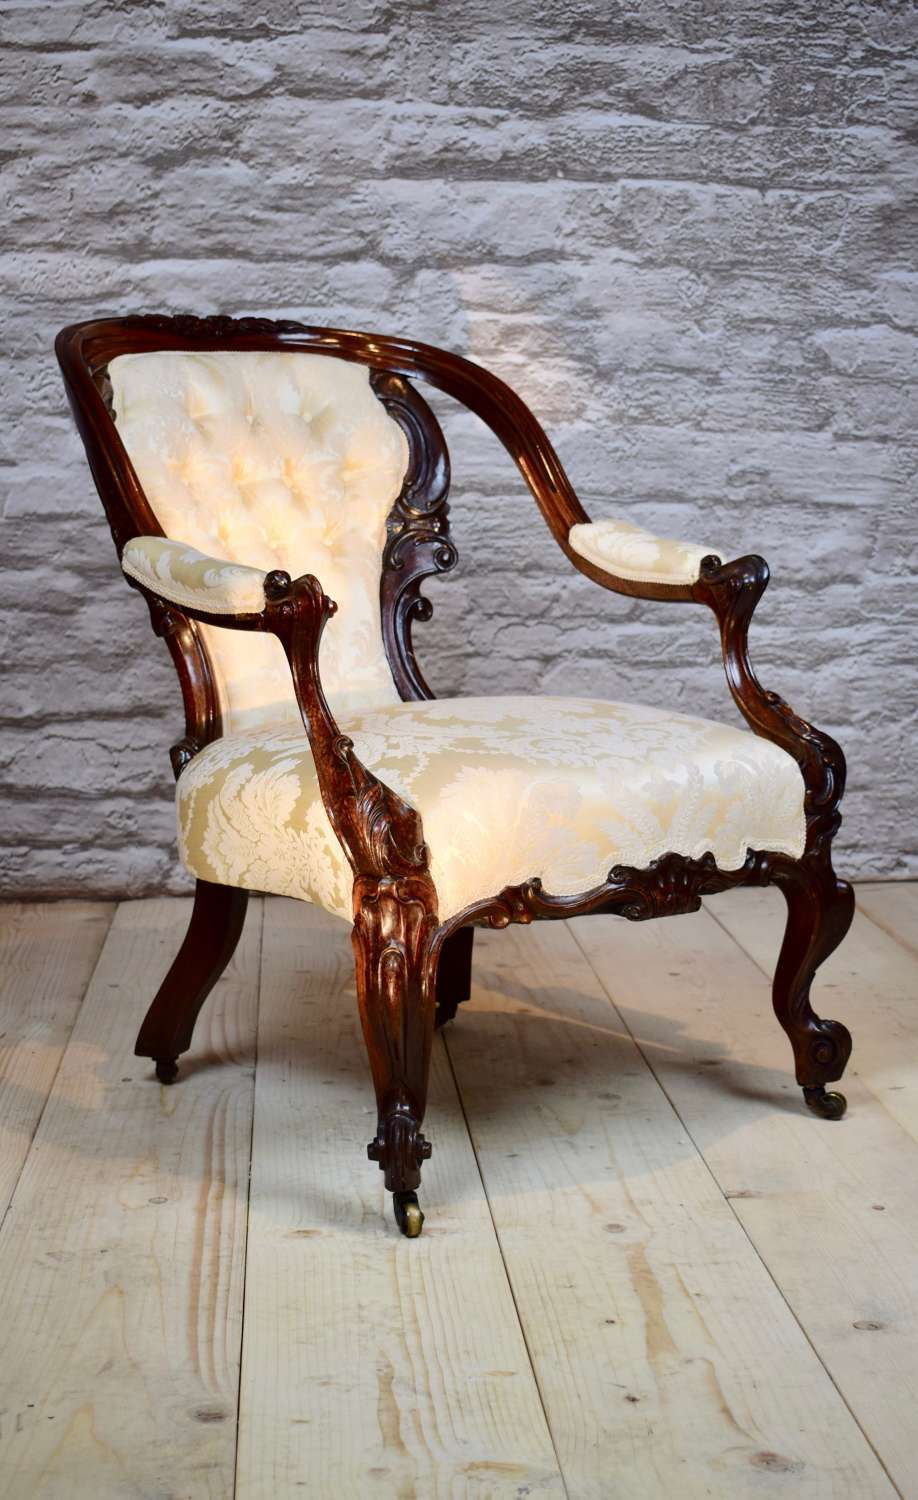 19th century rosewood armchair.